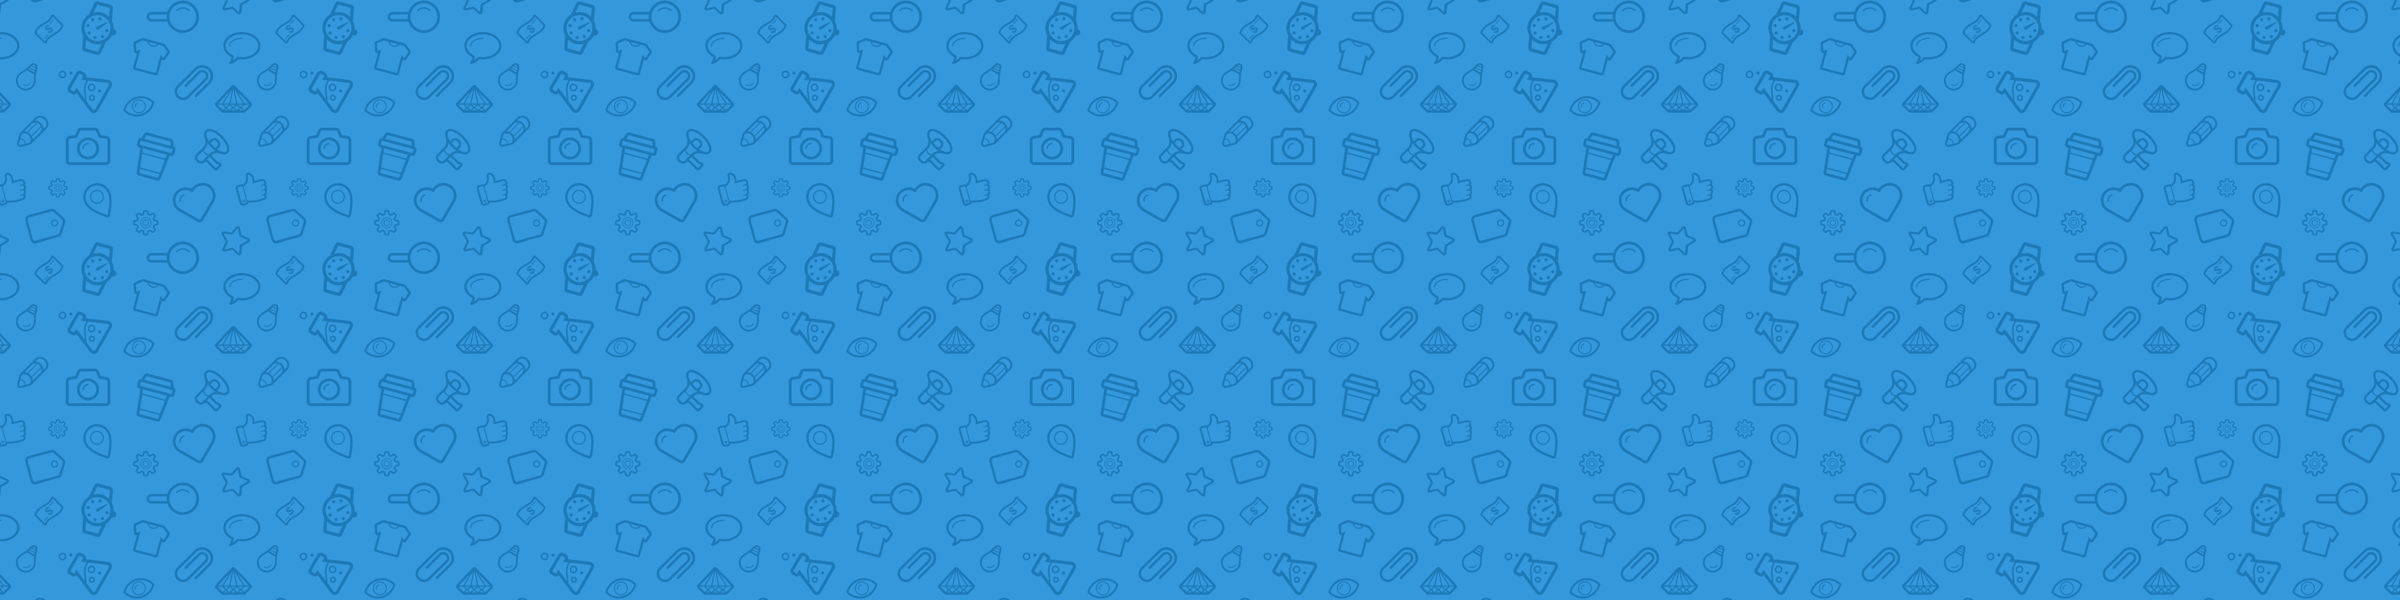 I set out to create pixel perfect icons  Here's what I discovered